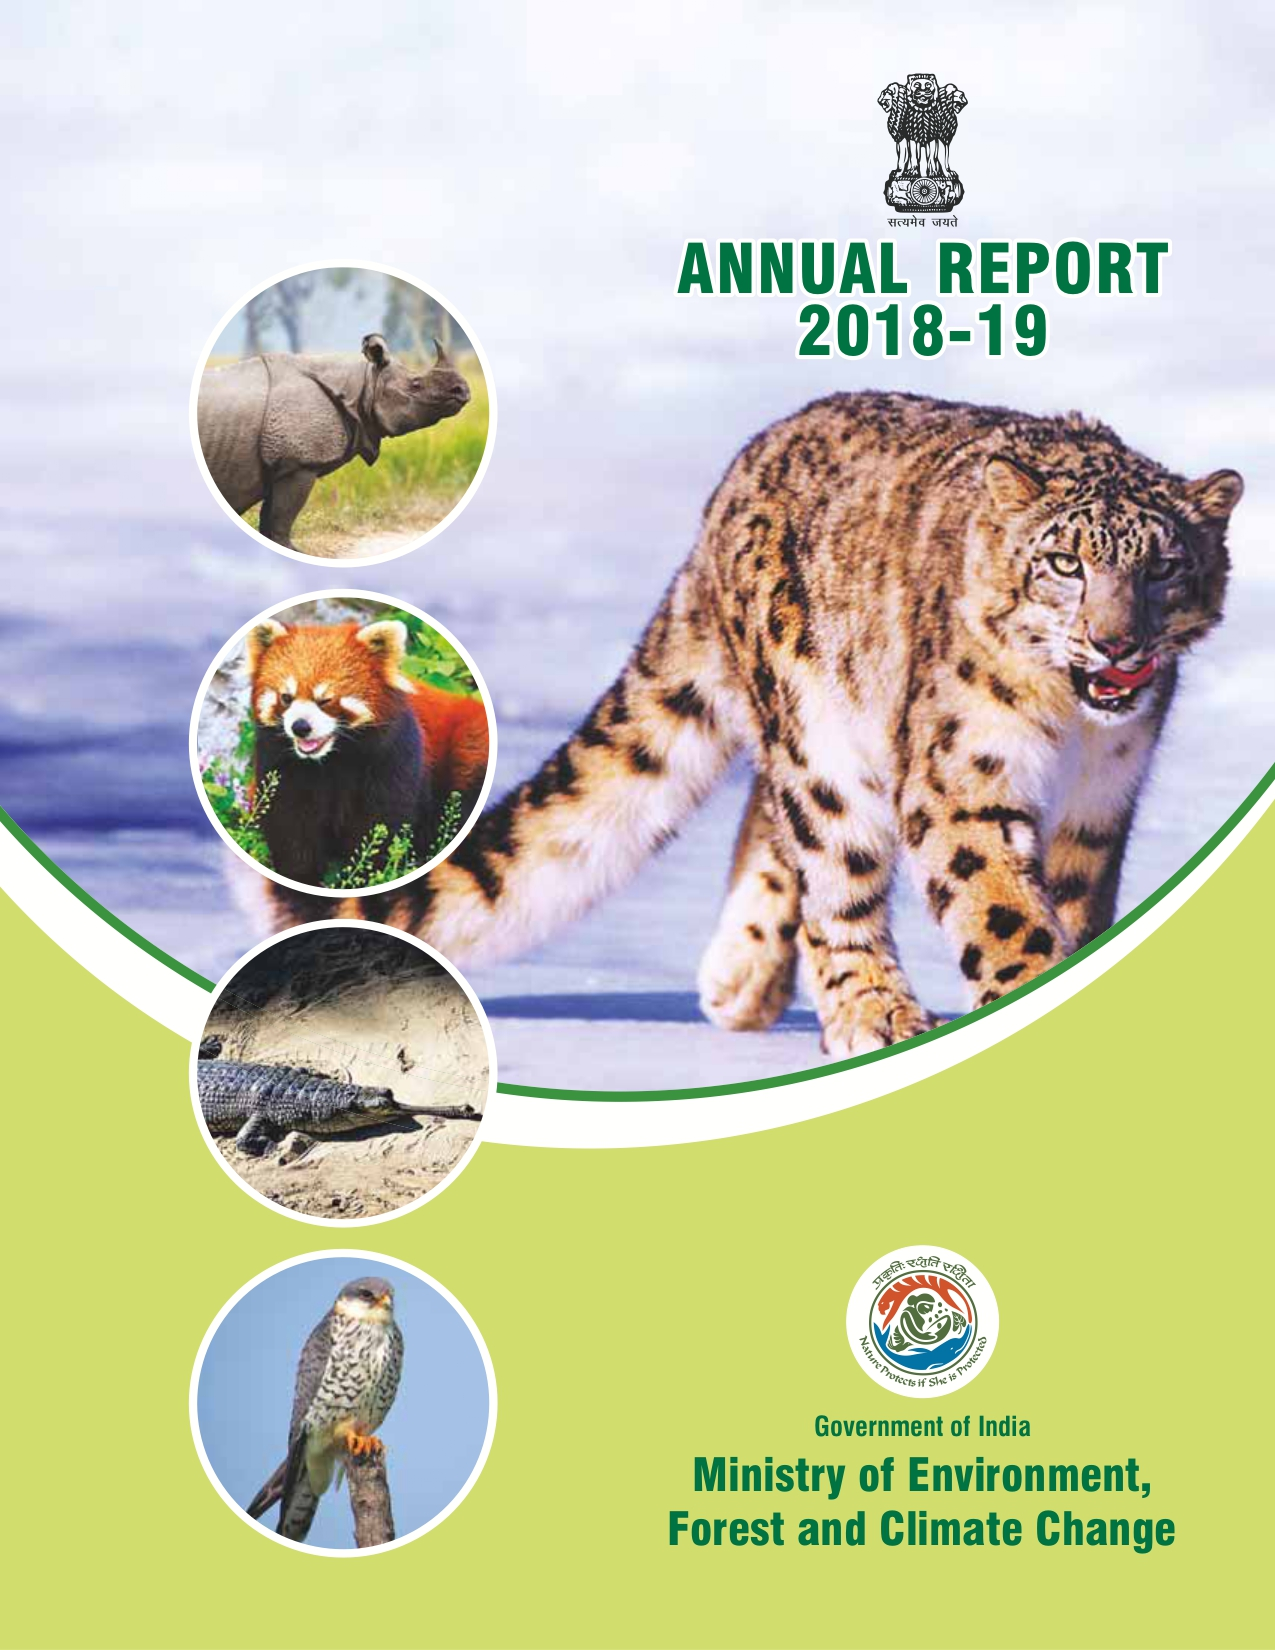 Image of cover of Annual Report 2018-2019